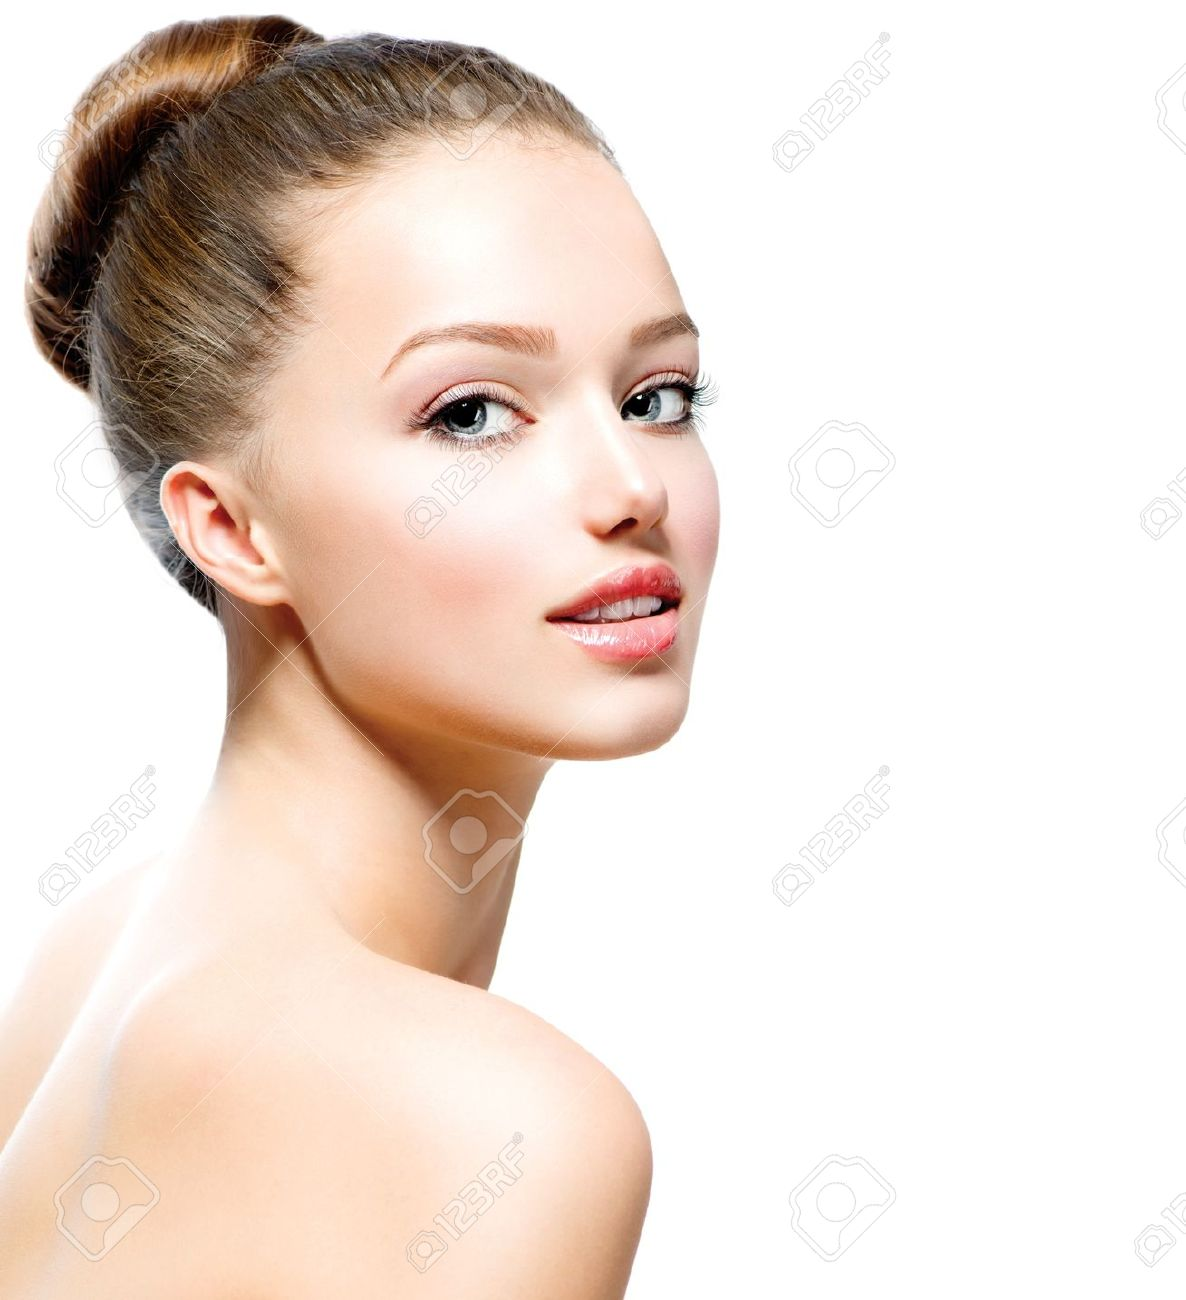 Beauty Teenage Girl Portrait isolated on a White Background Stock Photo - 18294910